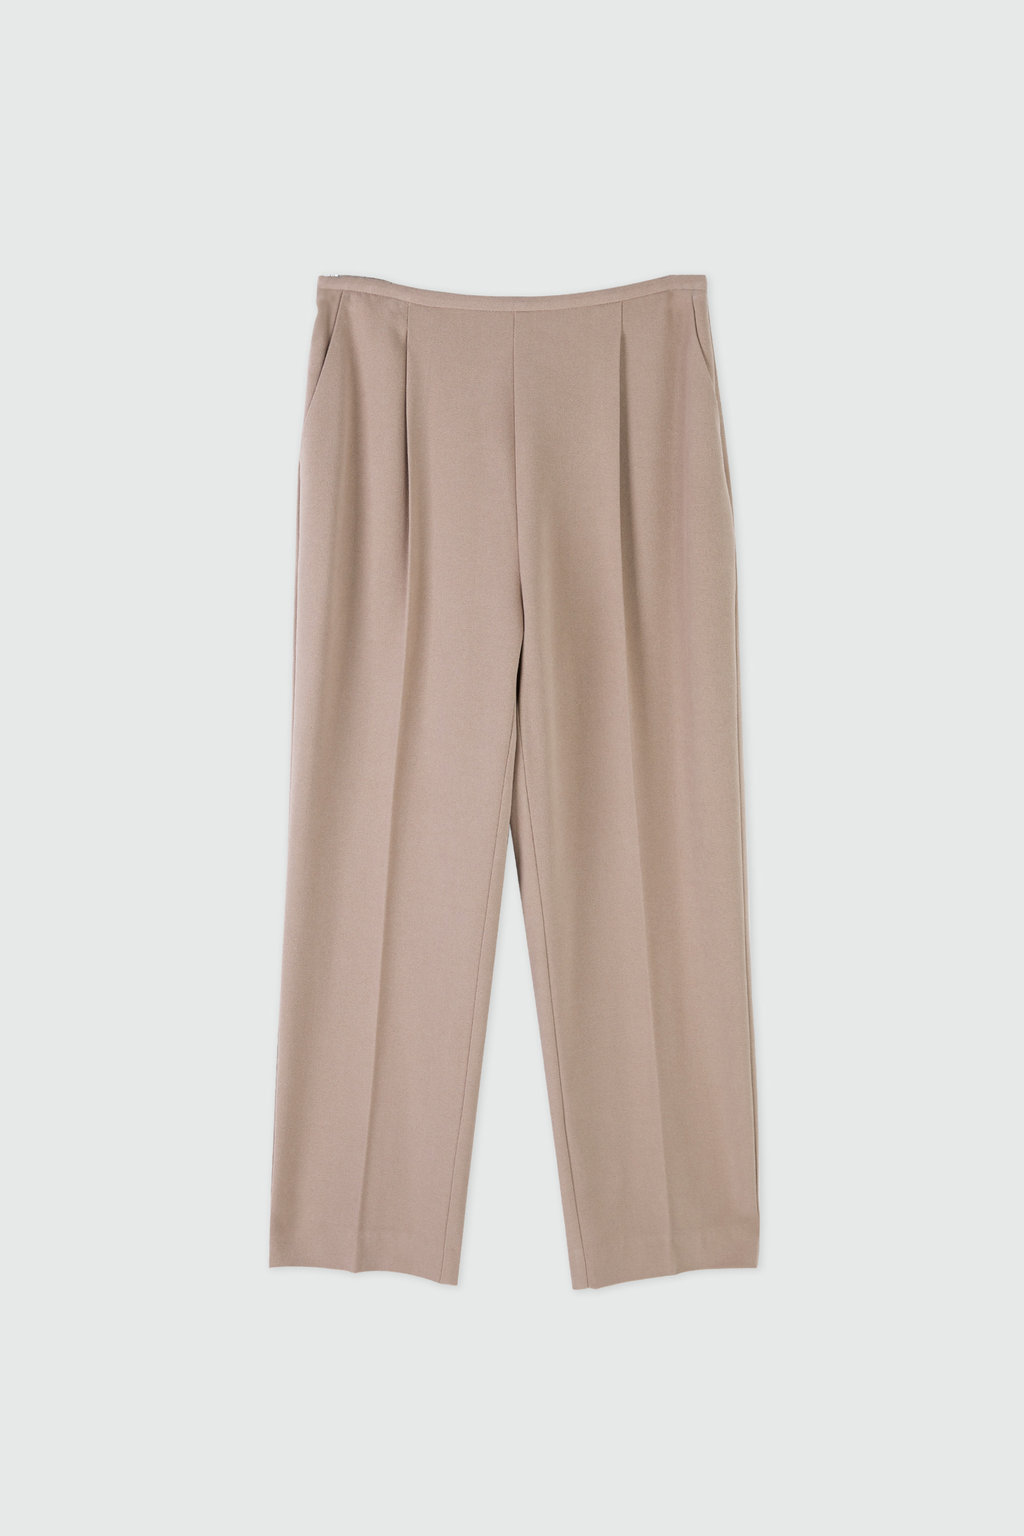 Pant 3200 Taupe 5